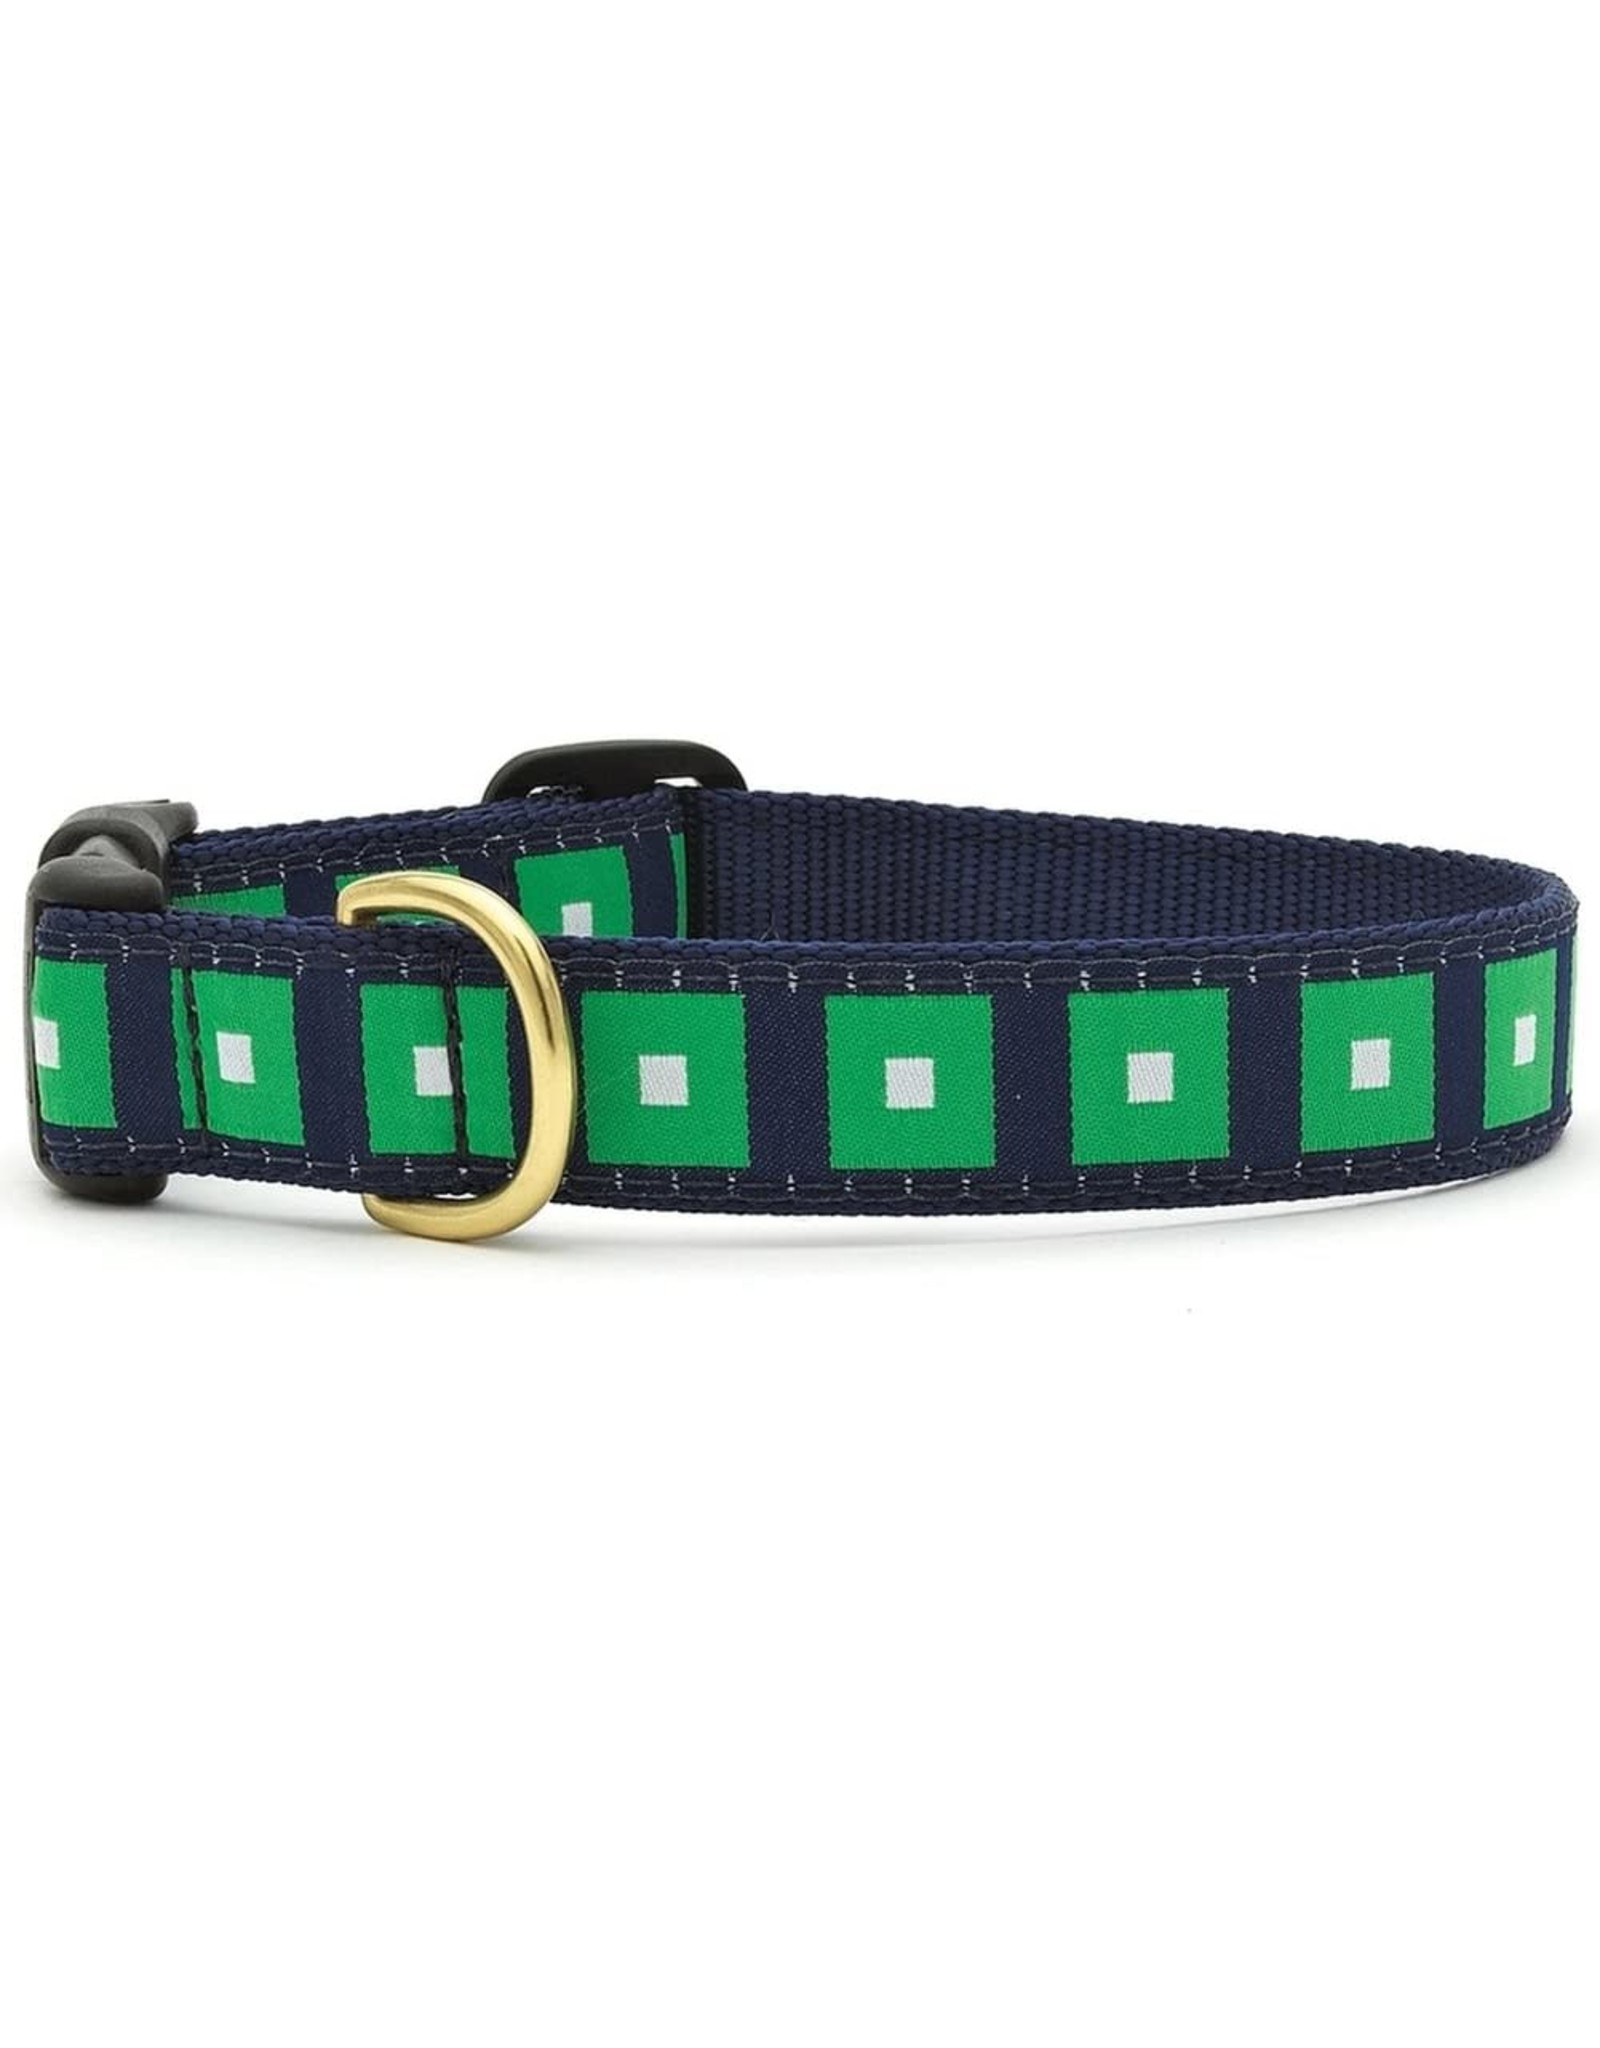 Up Country Cube Appeal Collar: Wide, S